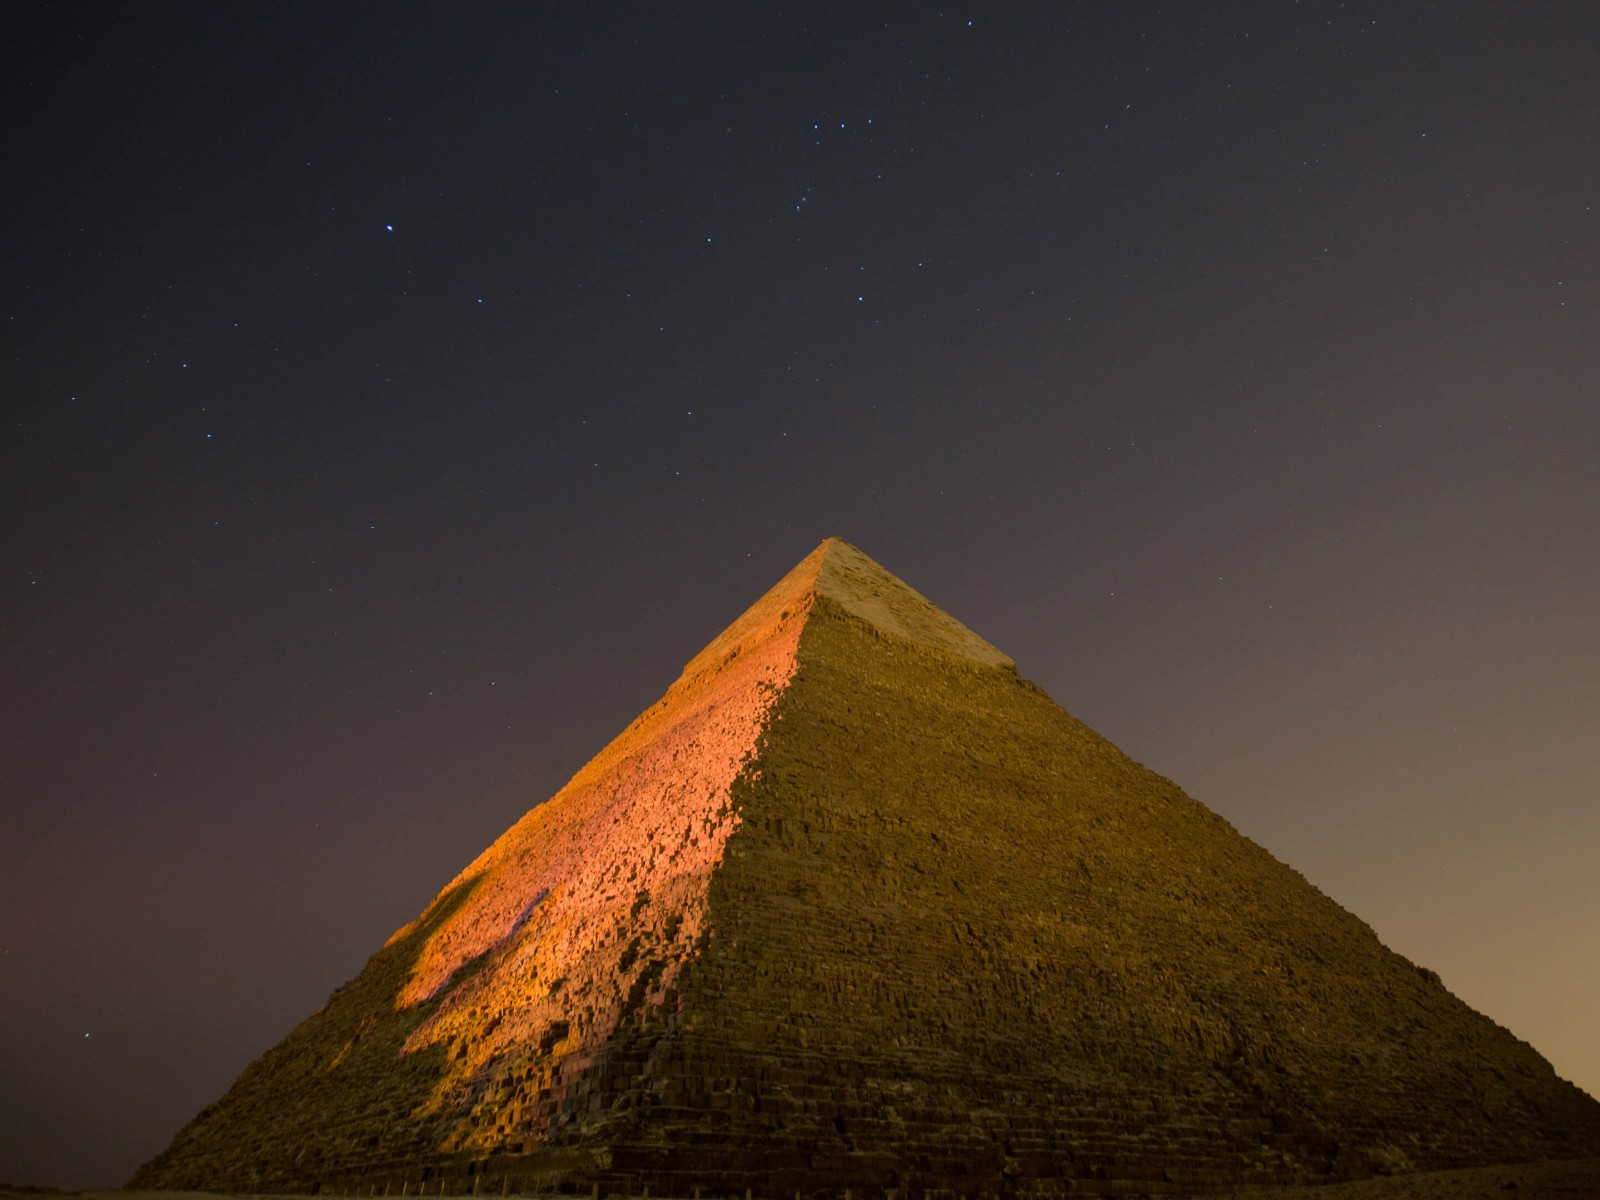 Pyramid by Night HD wallpaper for 1600 x 1200   HDwallpapersnet 1600x1200